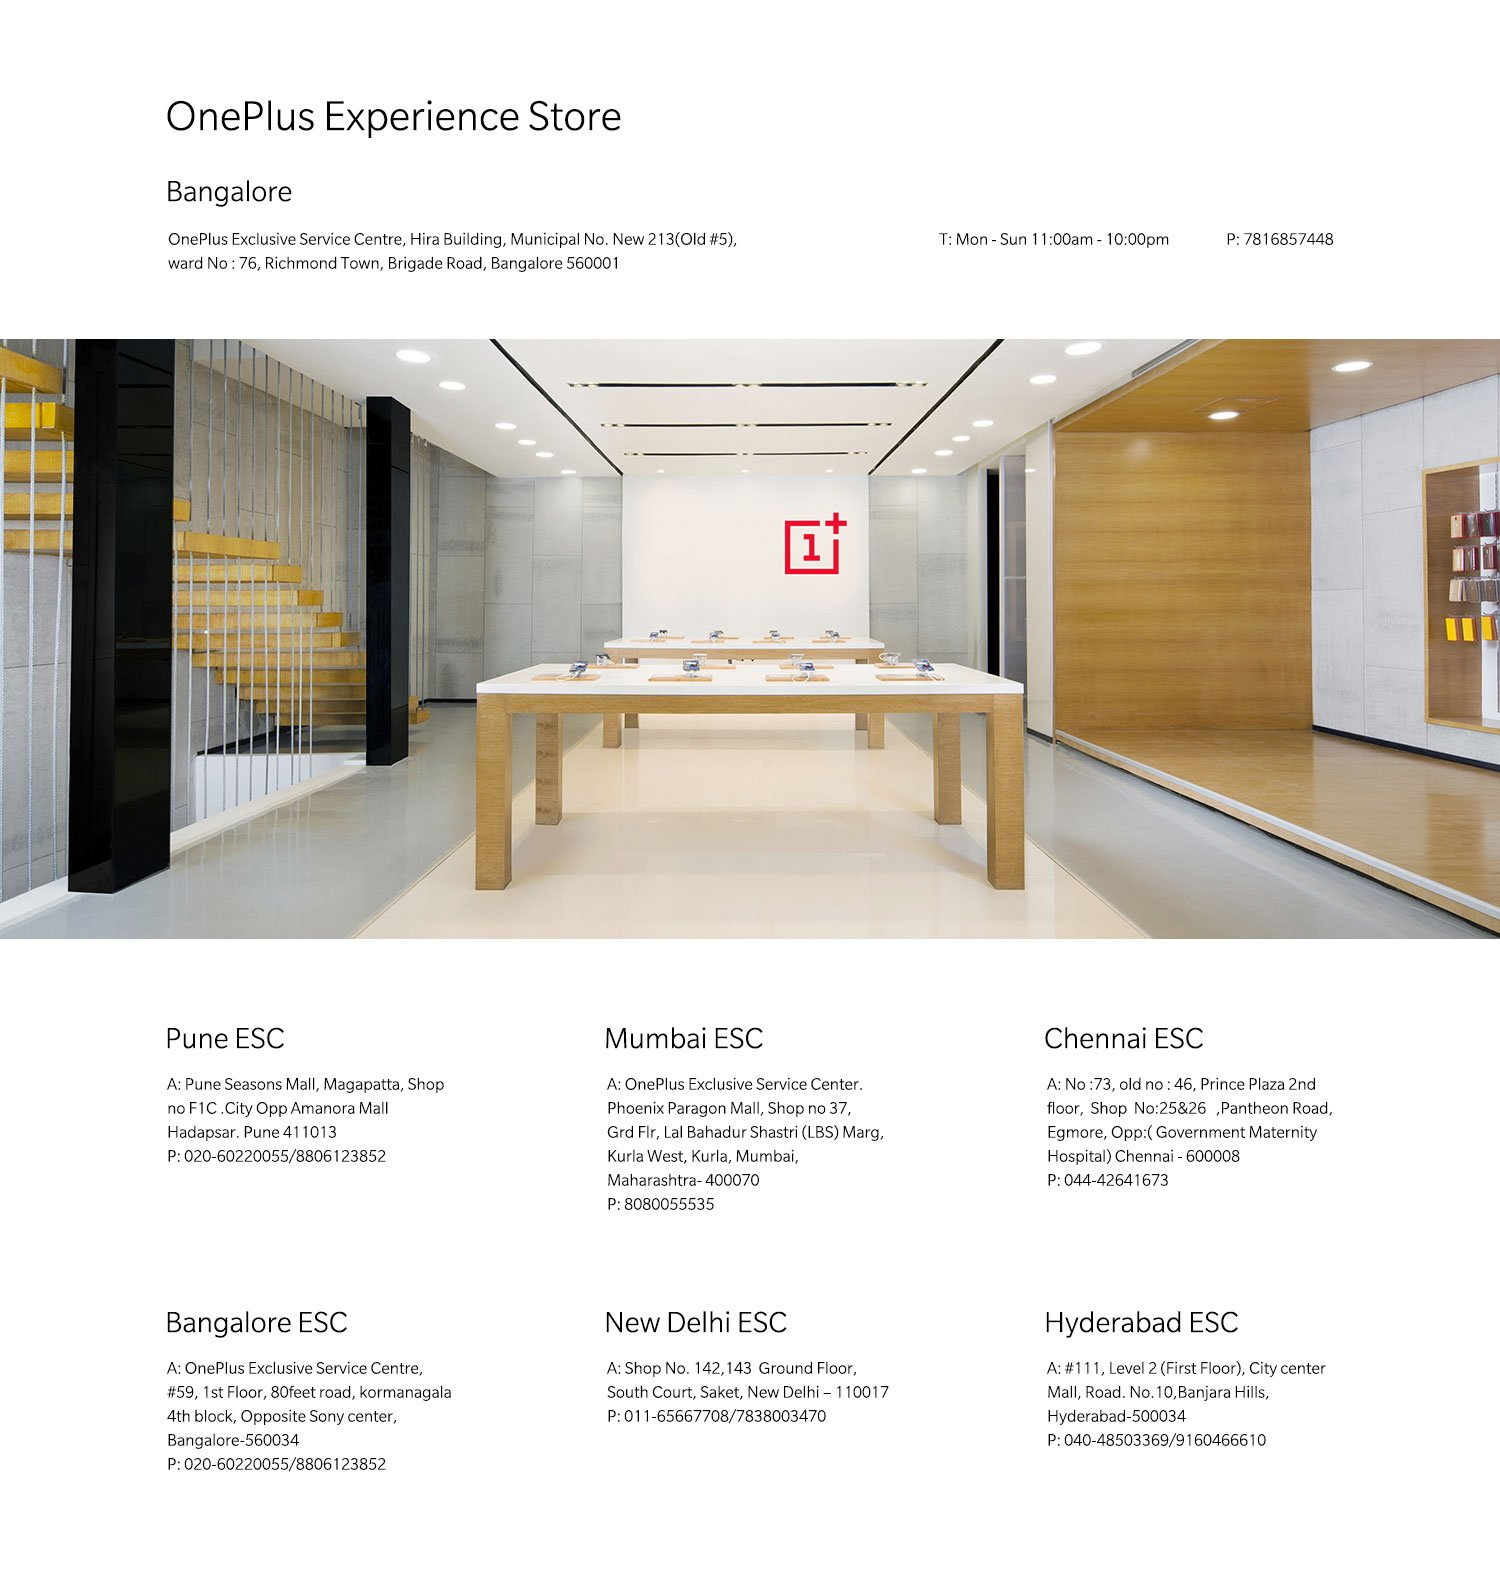 One plus store